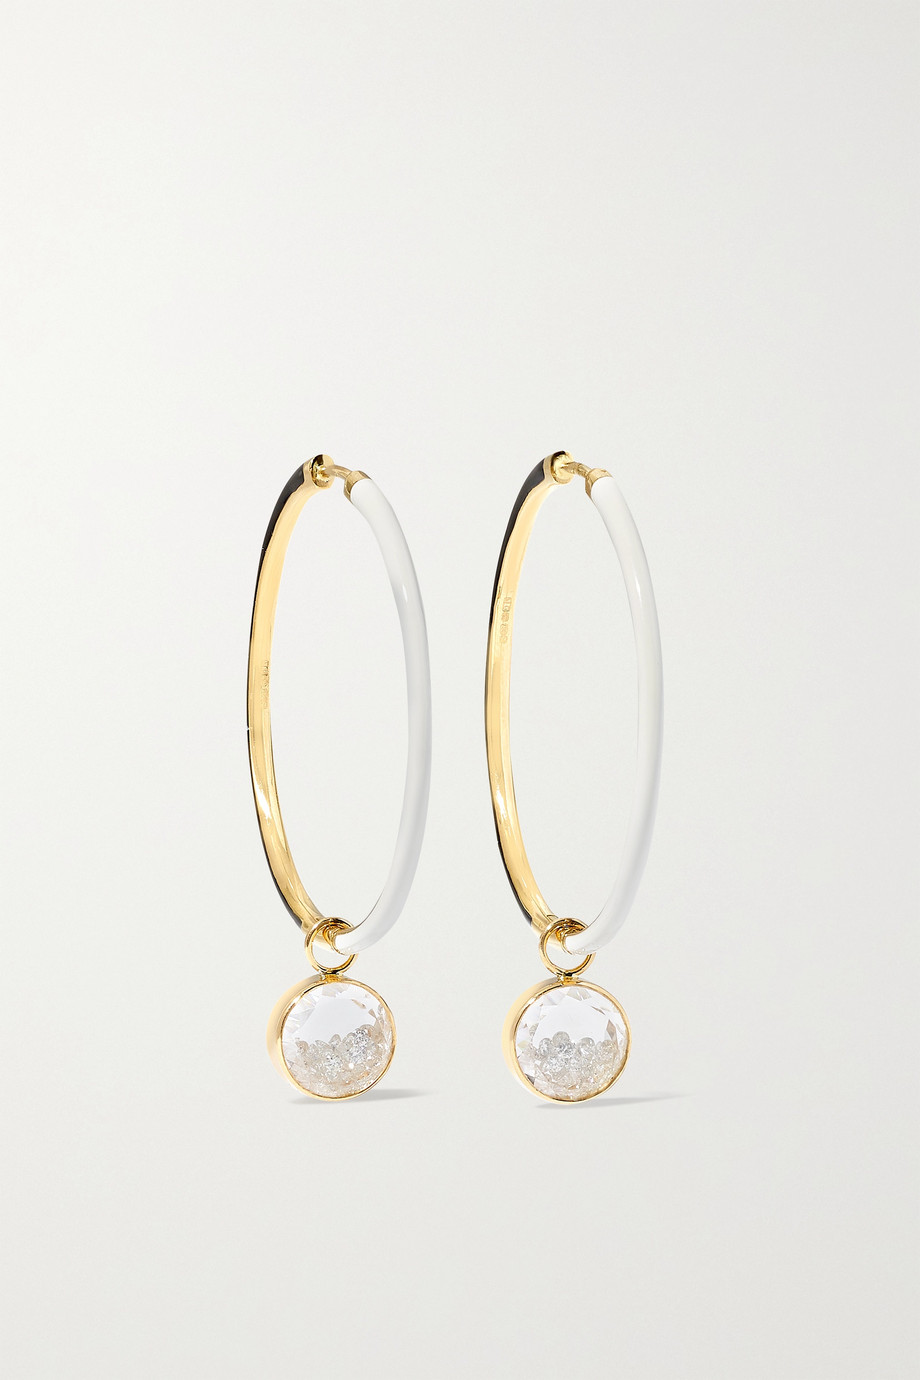 MORITZ GLIK 18-karat gold, enamel, sapphire crystal and diamond hoop earrings